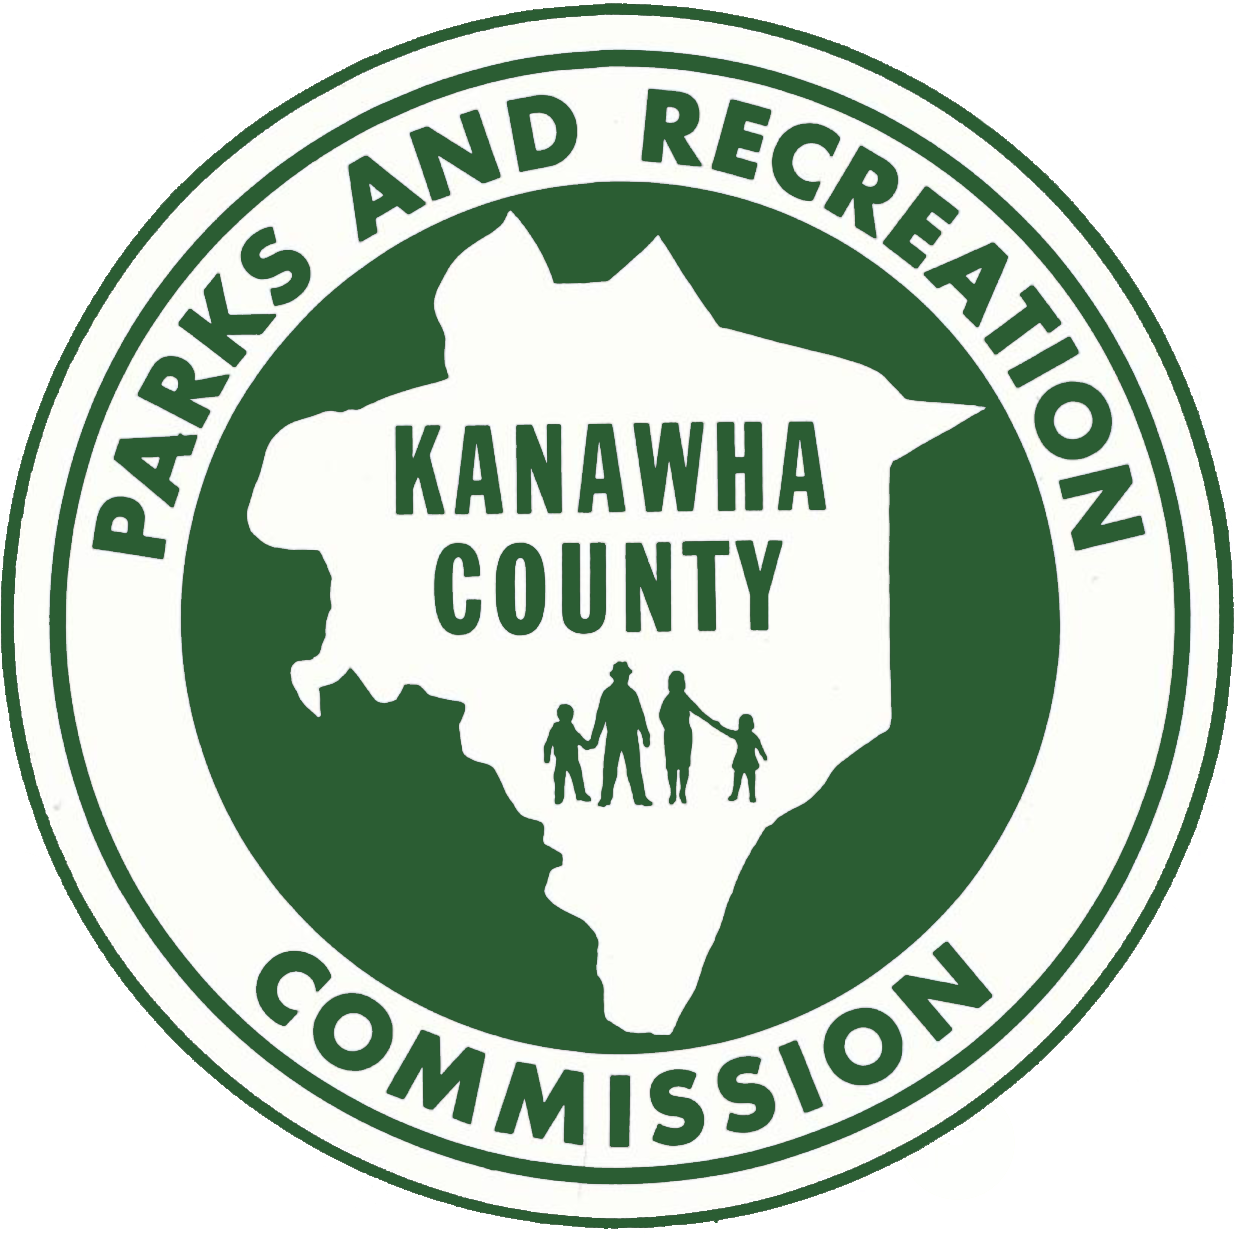 Kanawha County Parks and Recreation